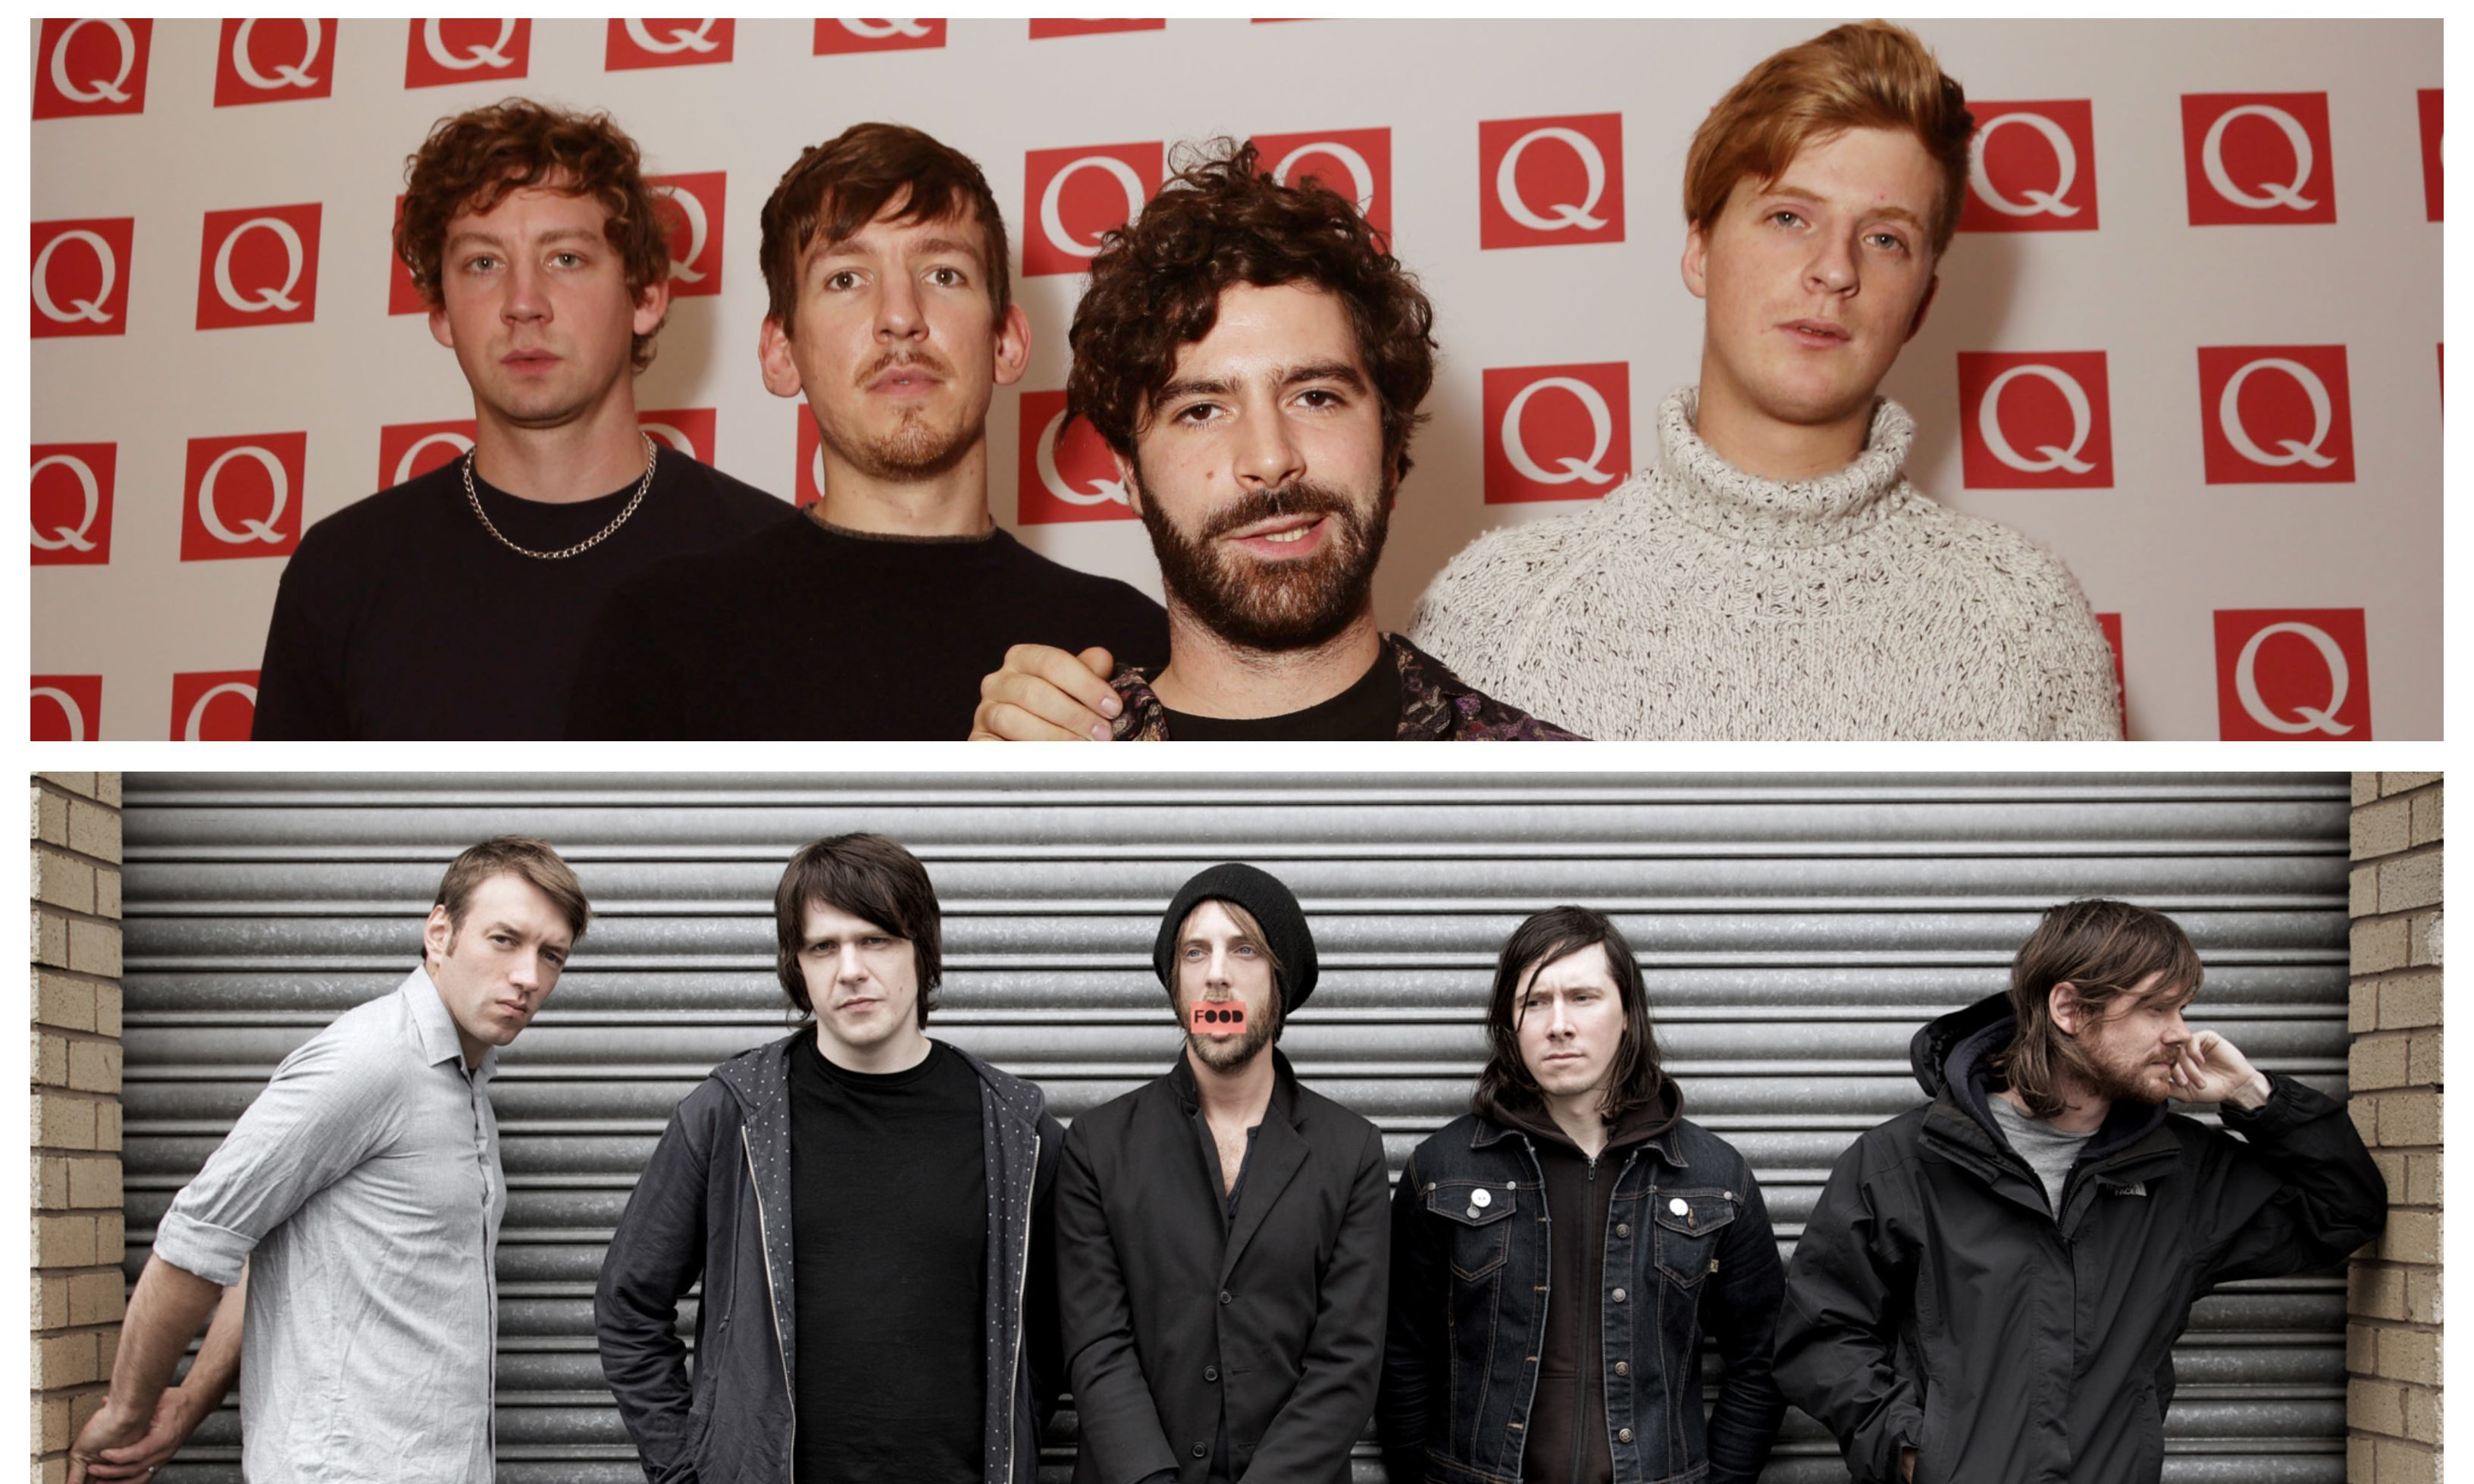 Foals (top) and Idlewild (bottom).